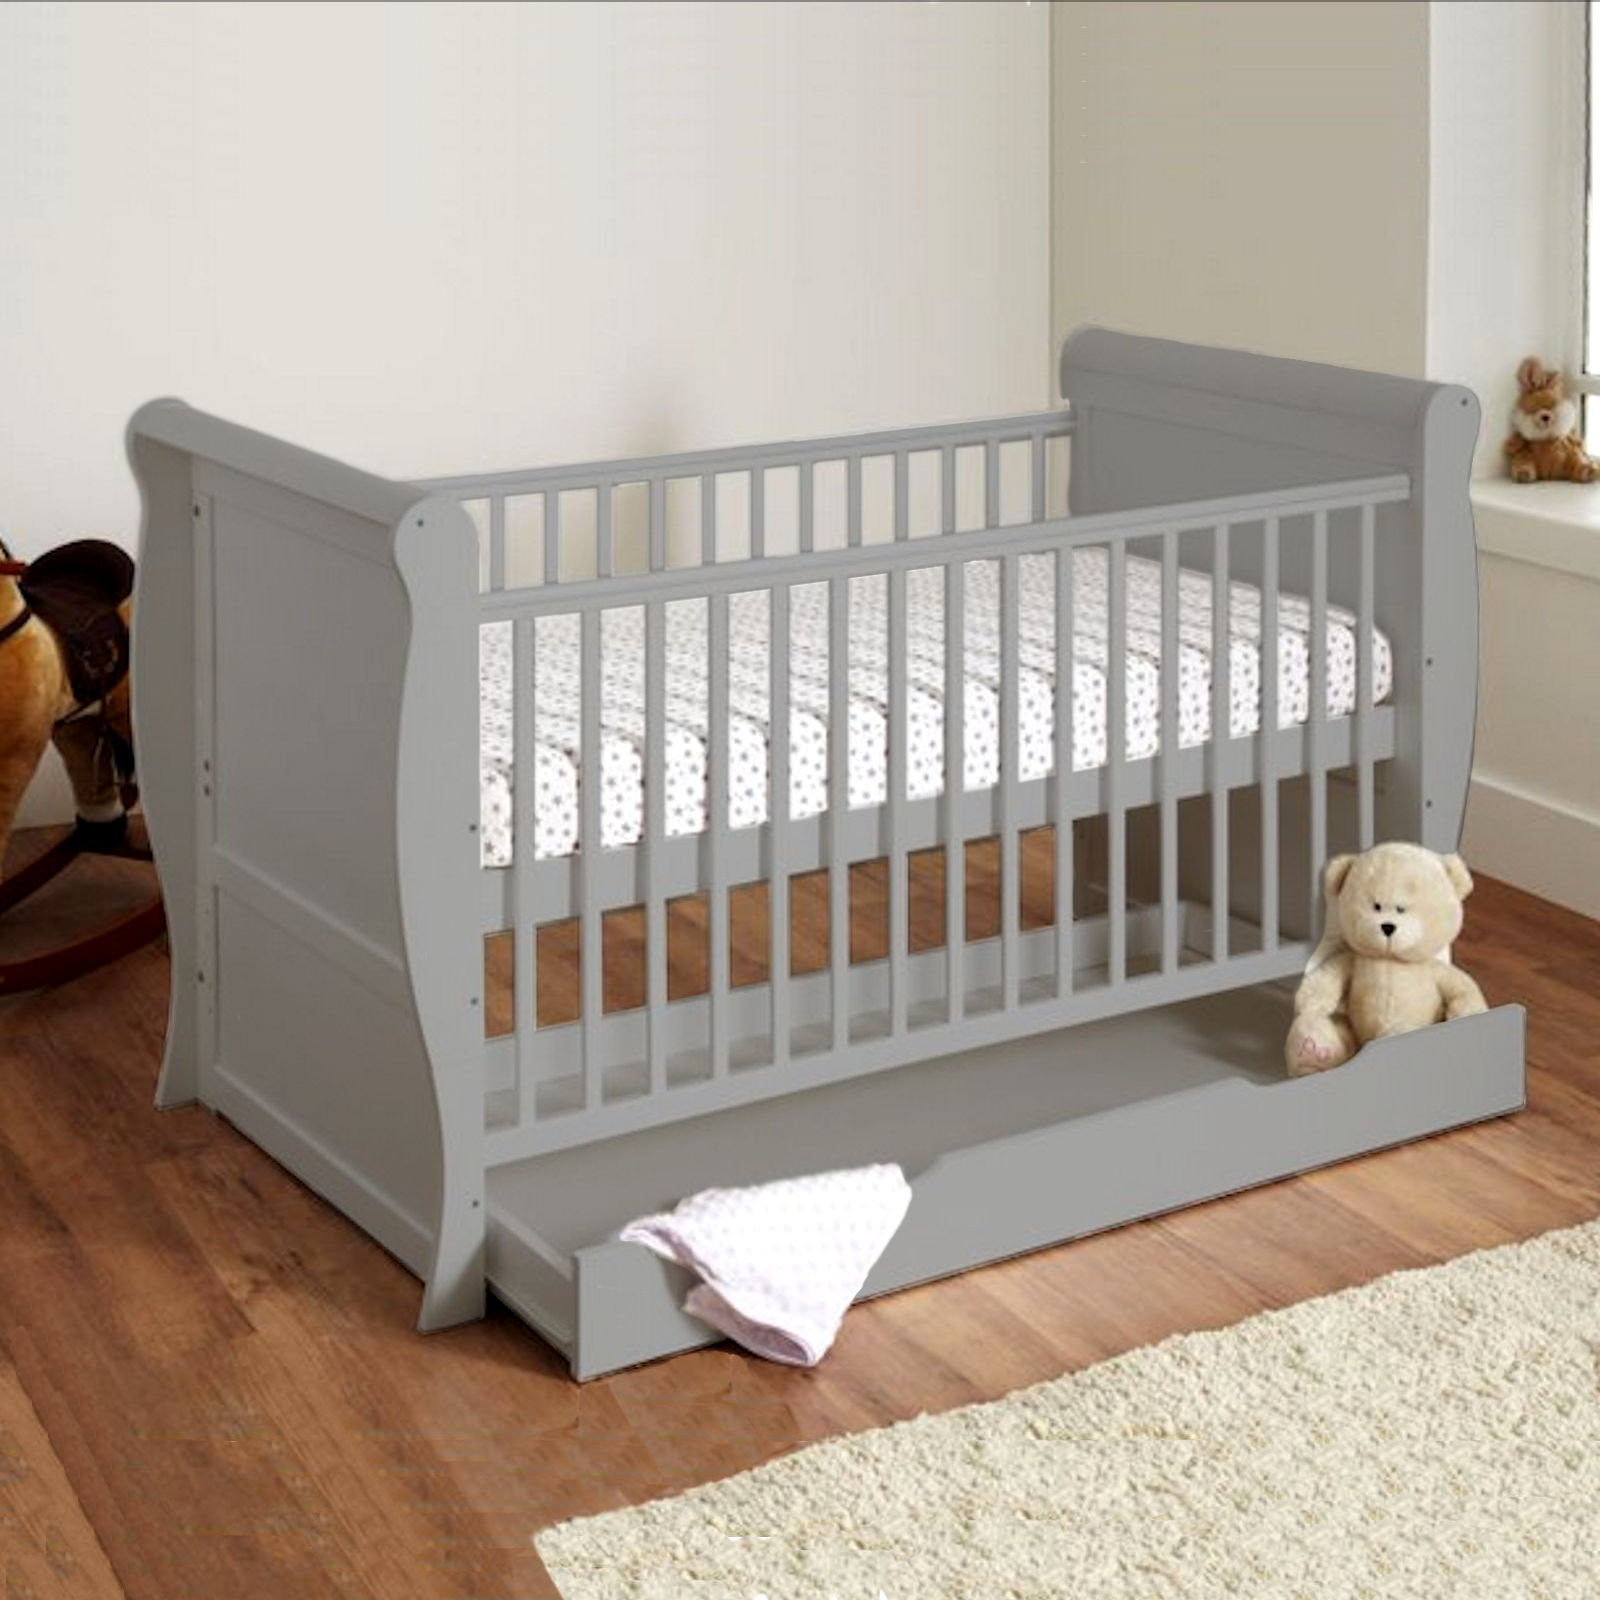 4Baby Sleigh Deluxe Cot Bed With Storage Drawer & Maxi Air ...